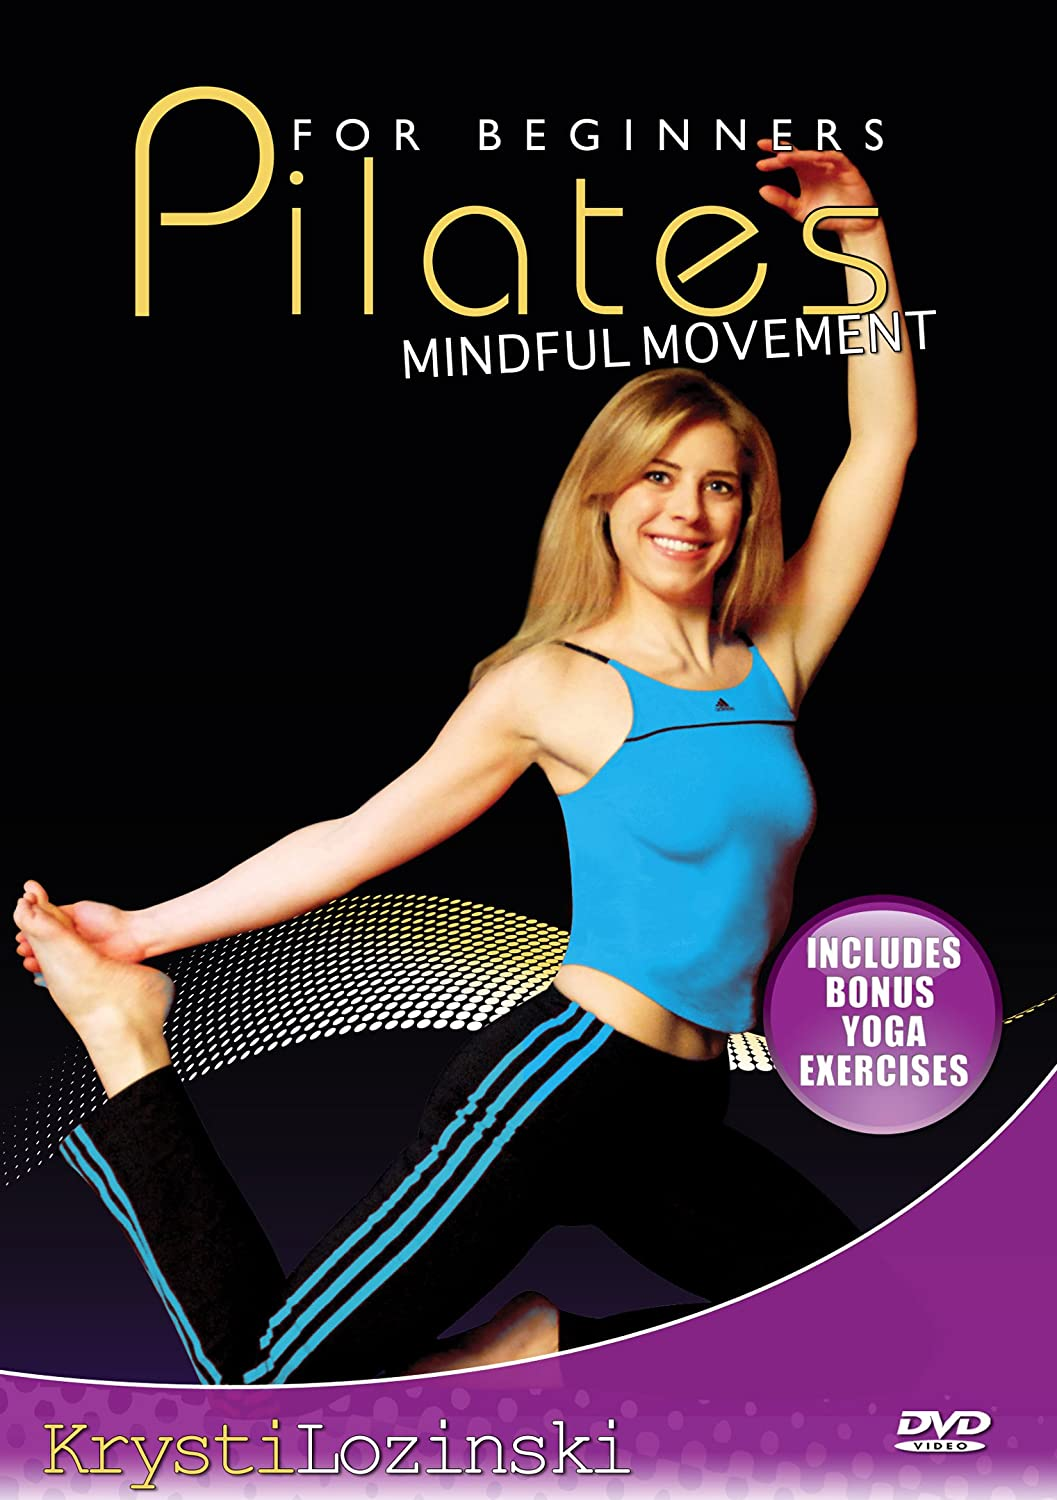 Amazon.com: Pilates For Beginners DVD: Mindful Movement ...